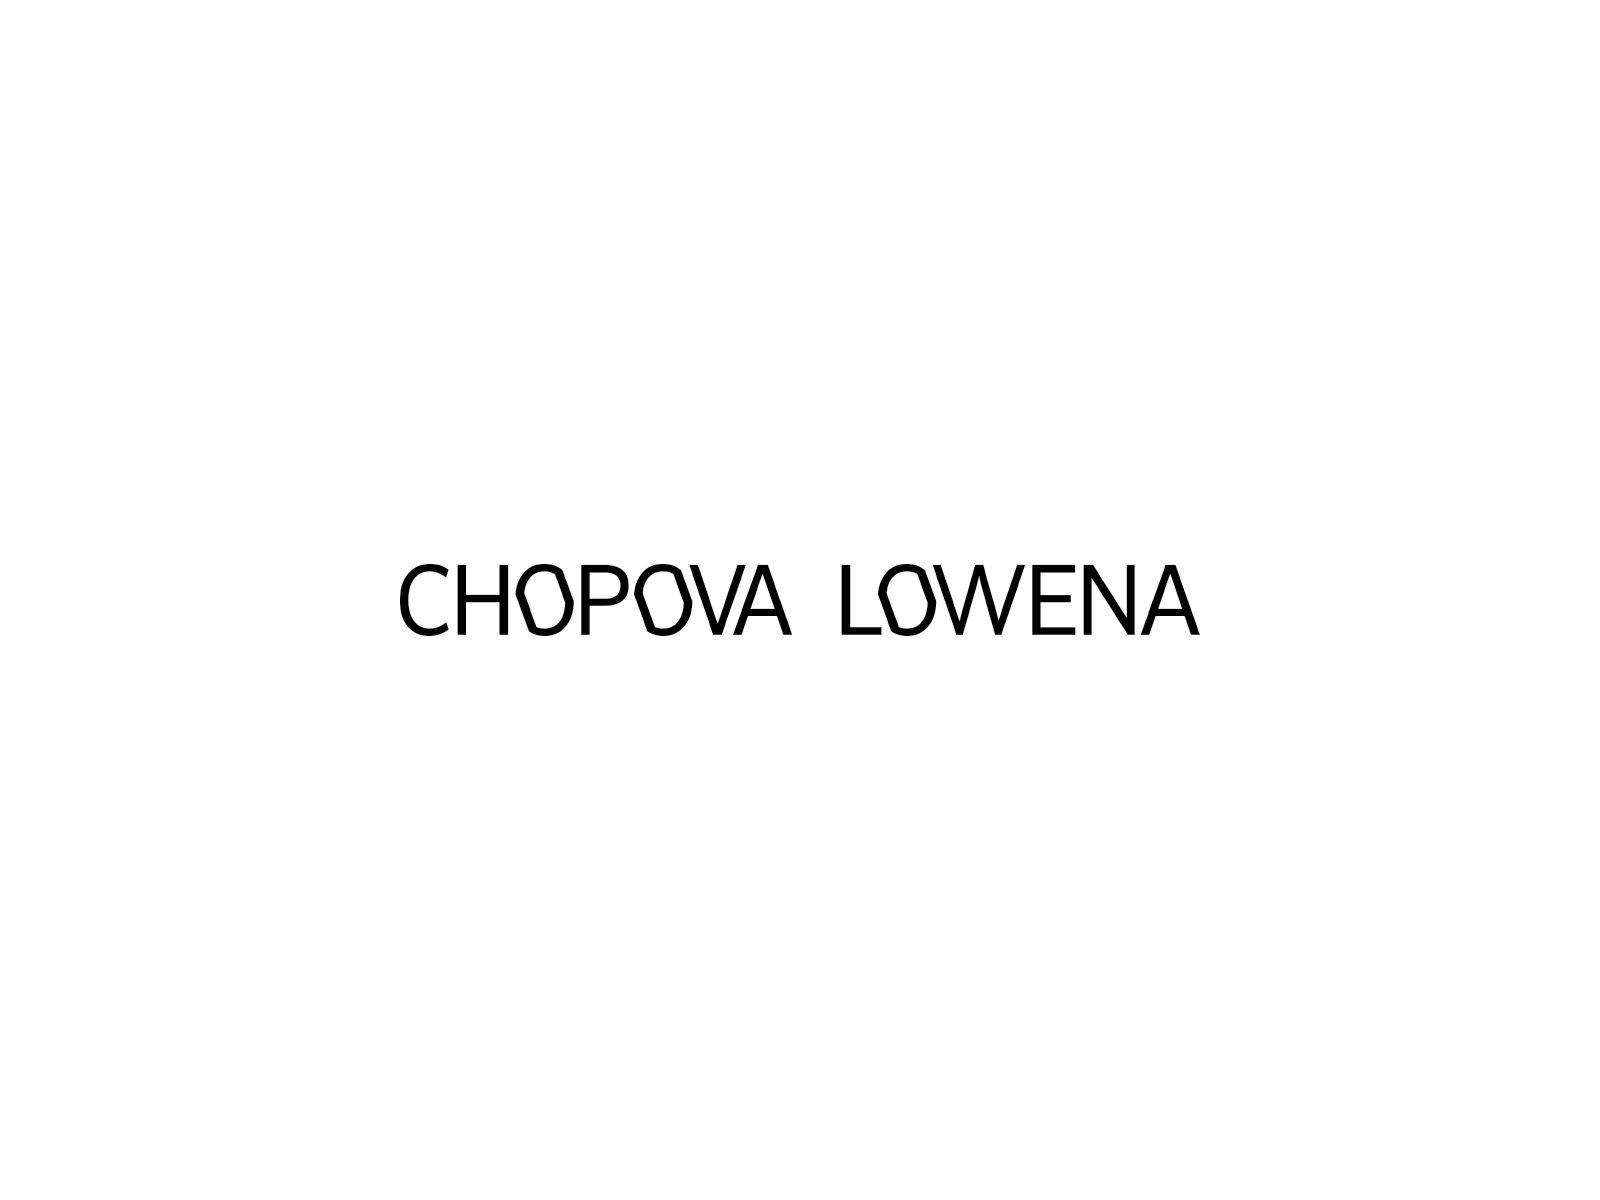 image of Chopova Lowena